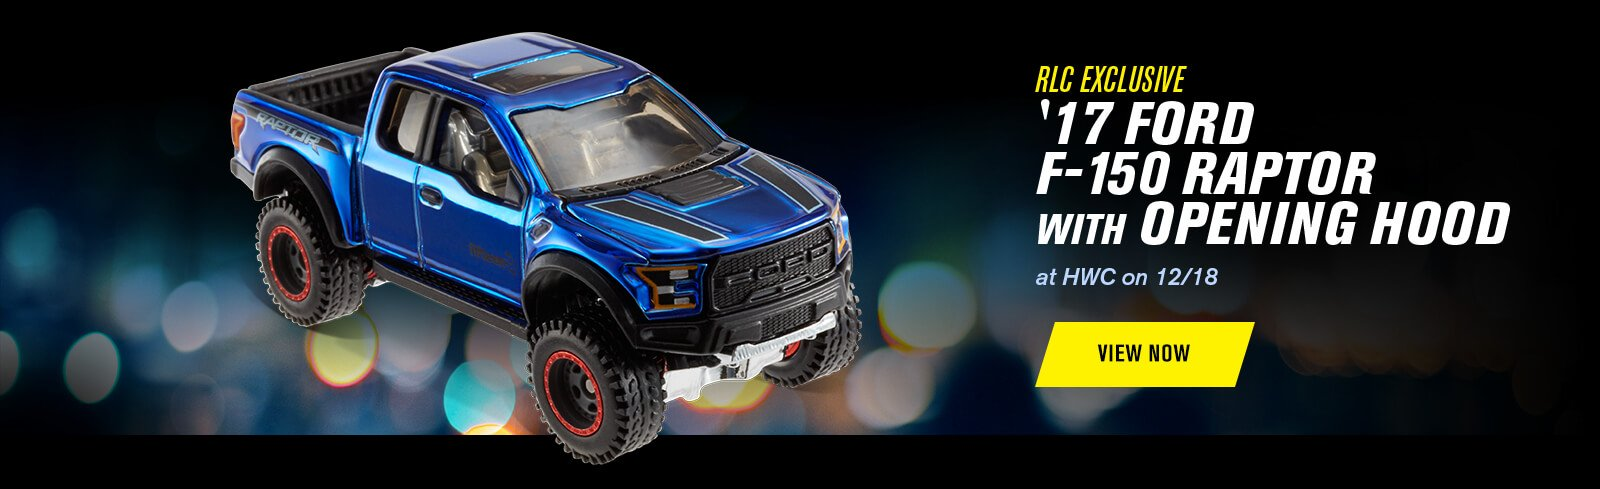 RLC Exclusive '17 Ford F-150 Raptor With Opening Hood at HWC on 12/18